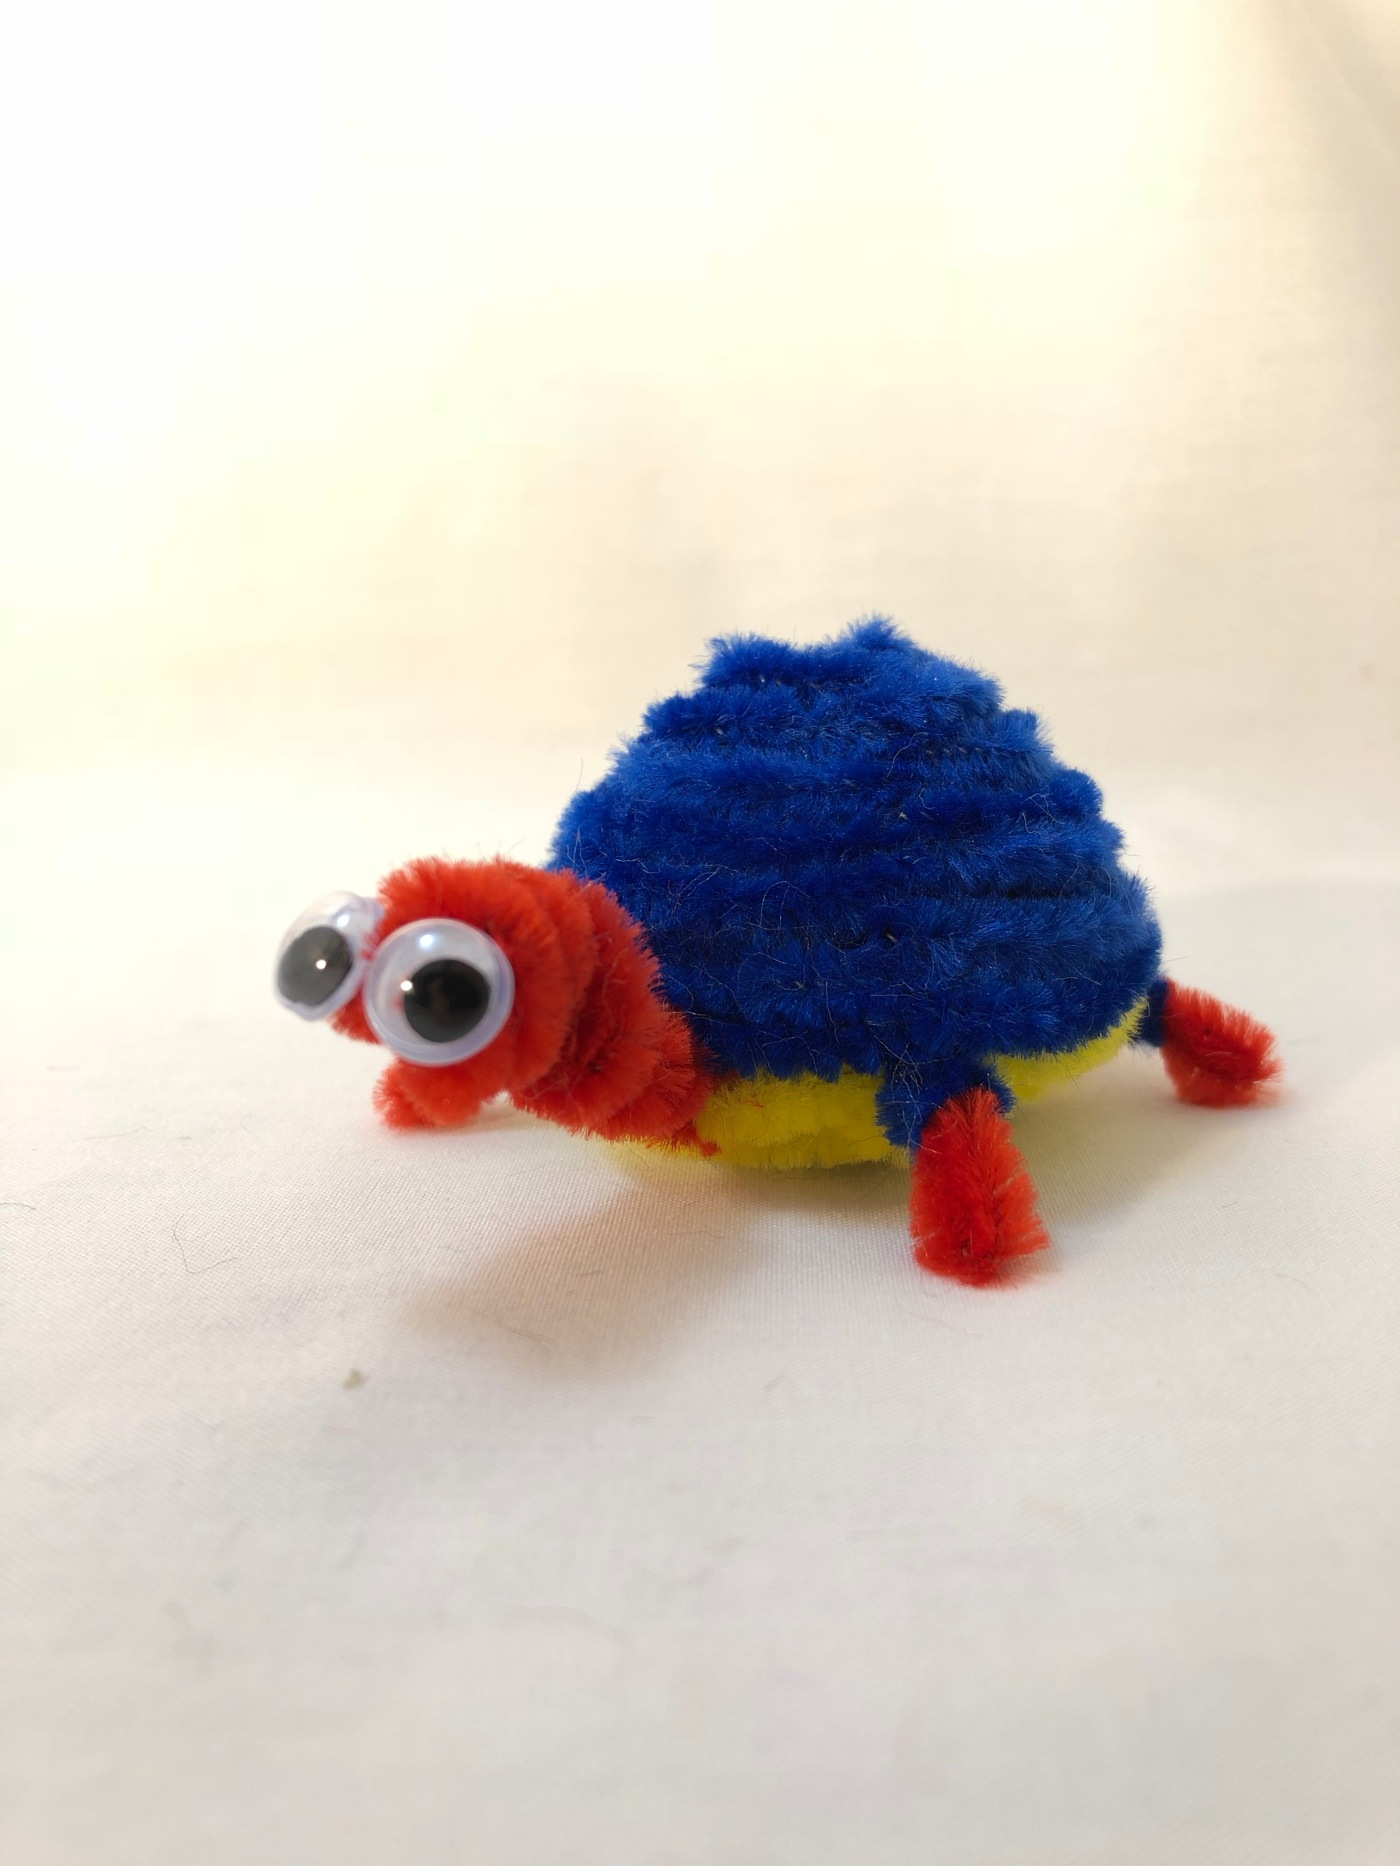 Pipe Cleaner Turtle Step By Step Instructions Easy 30 Minute